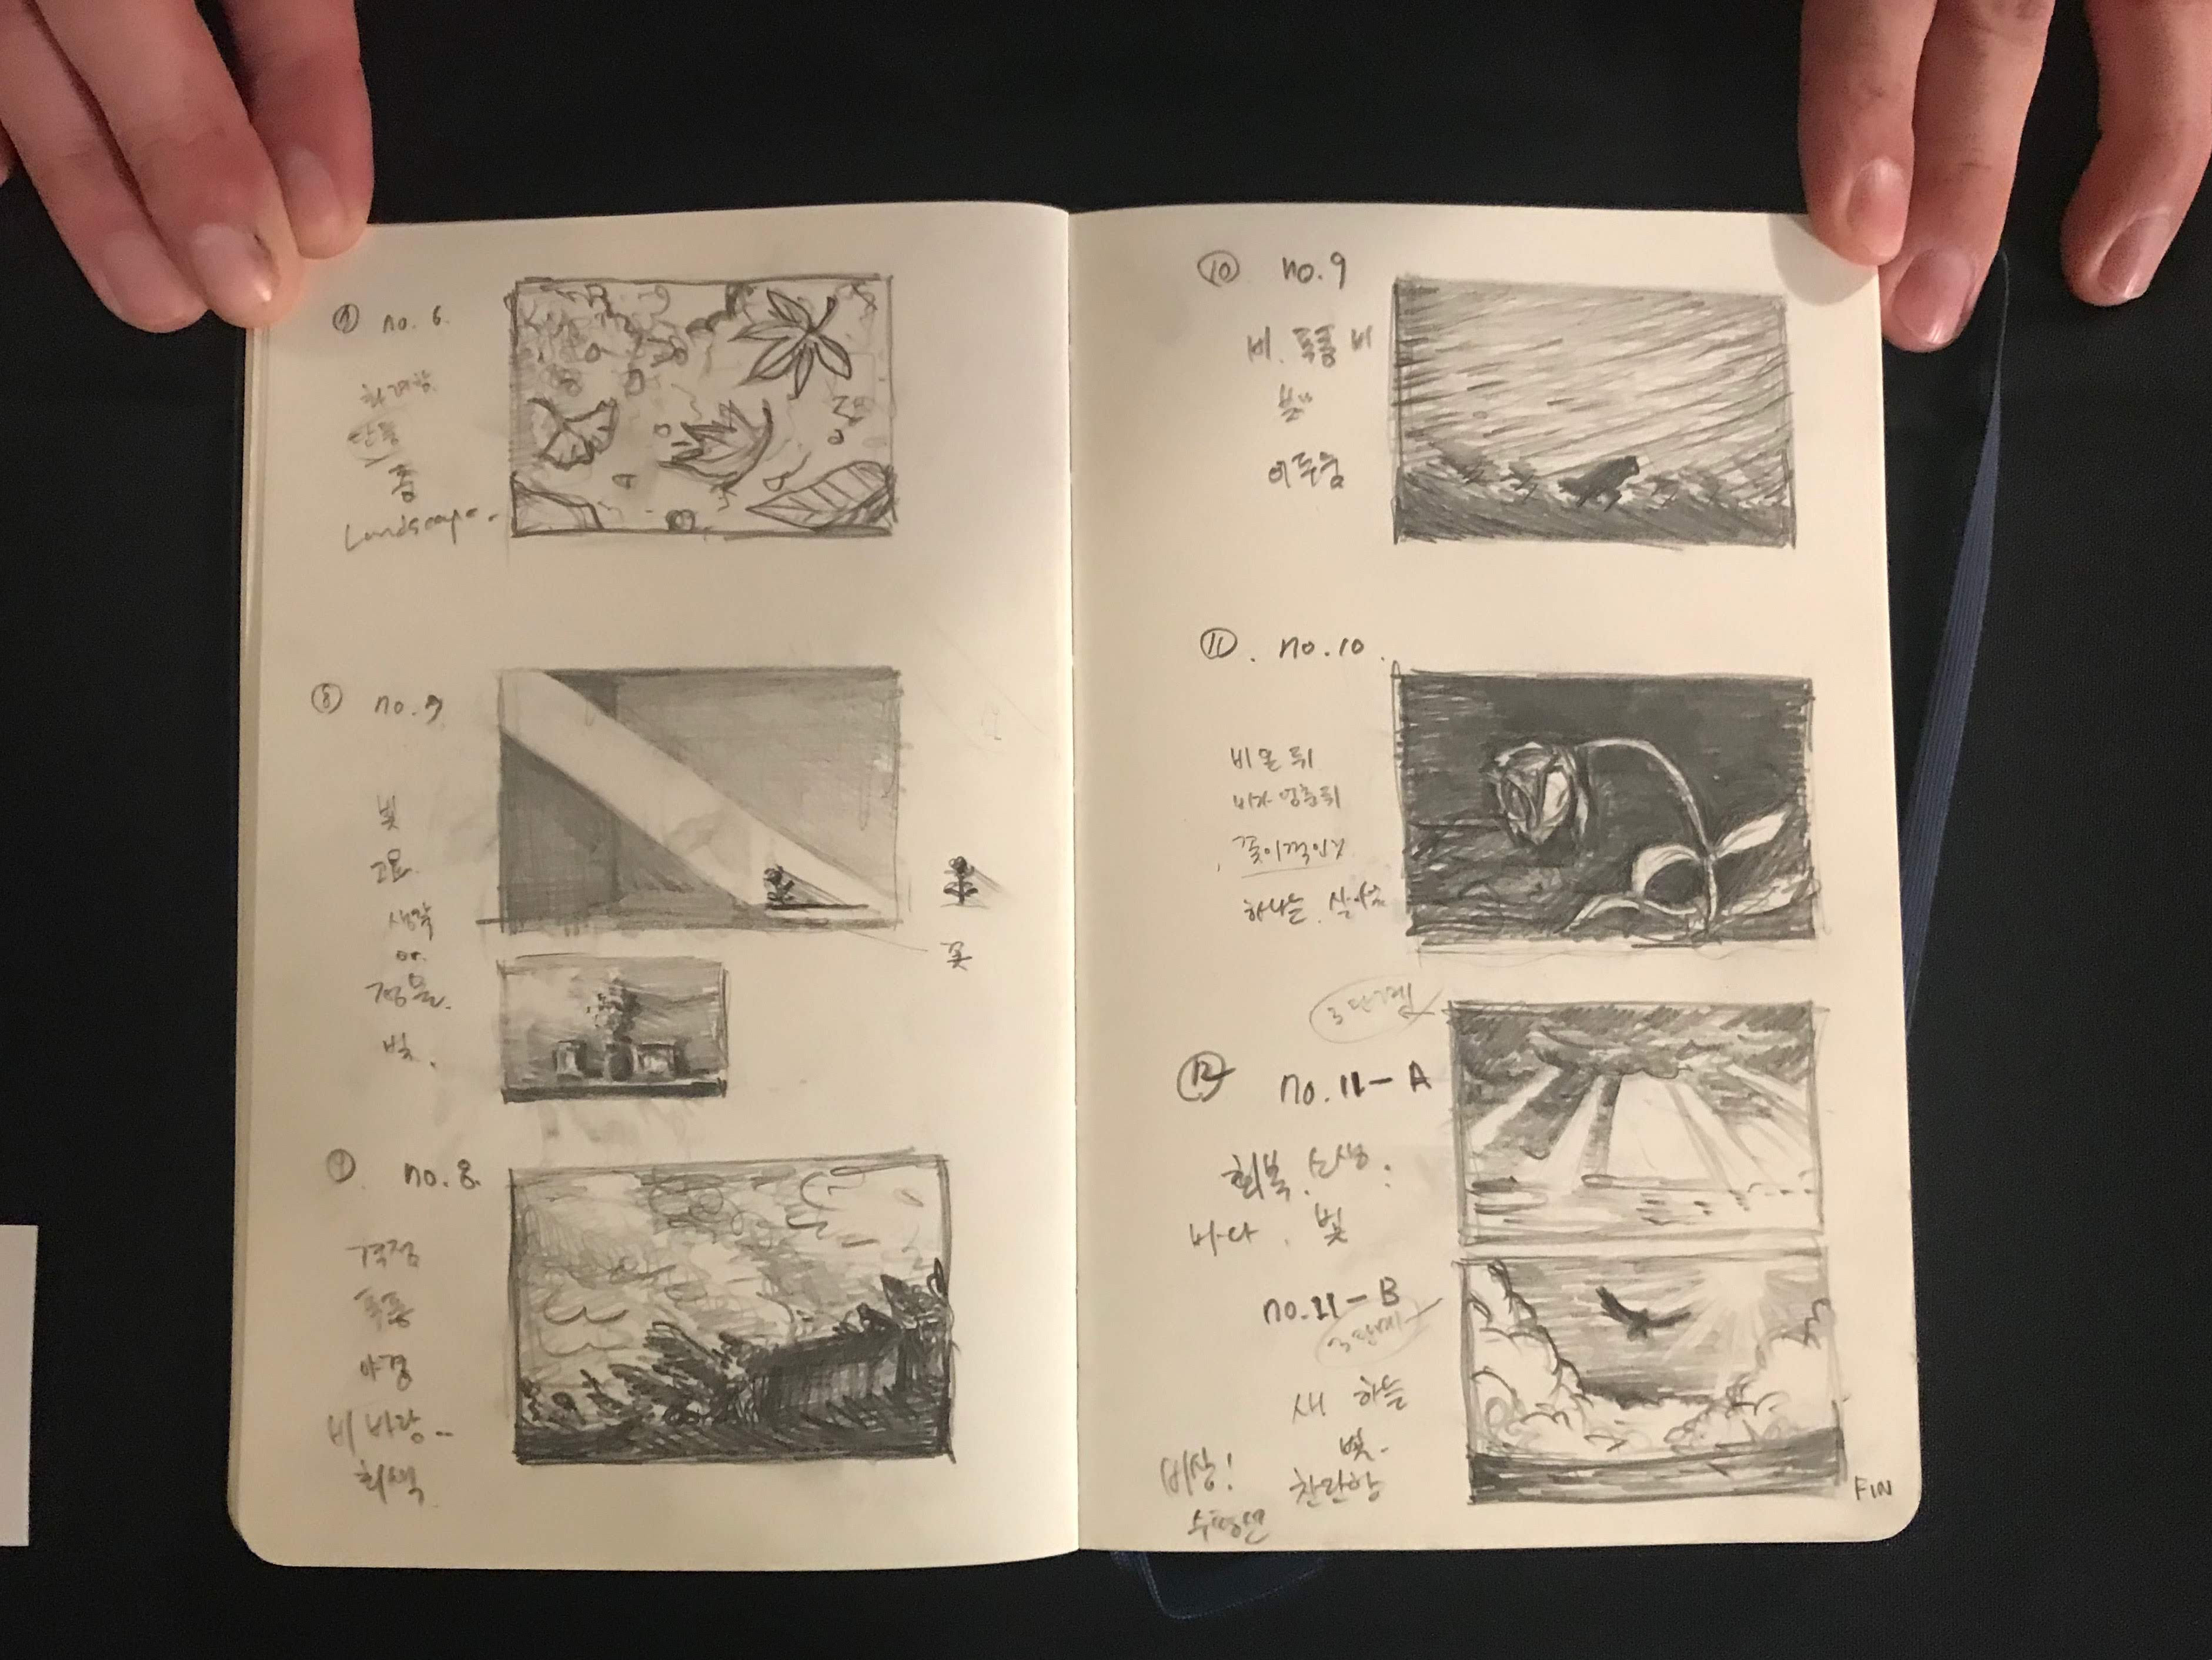 Moonsub Shin illustrations featured in Pastimes for a Lifetime Blog